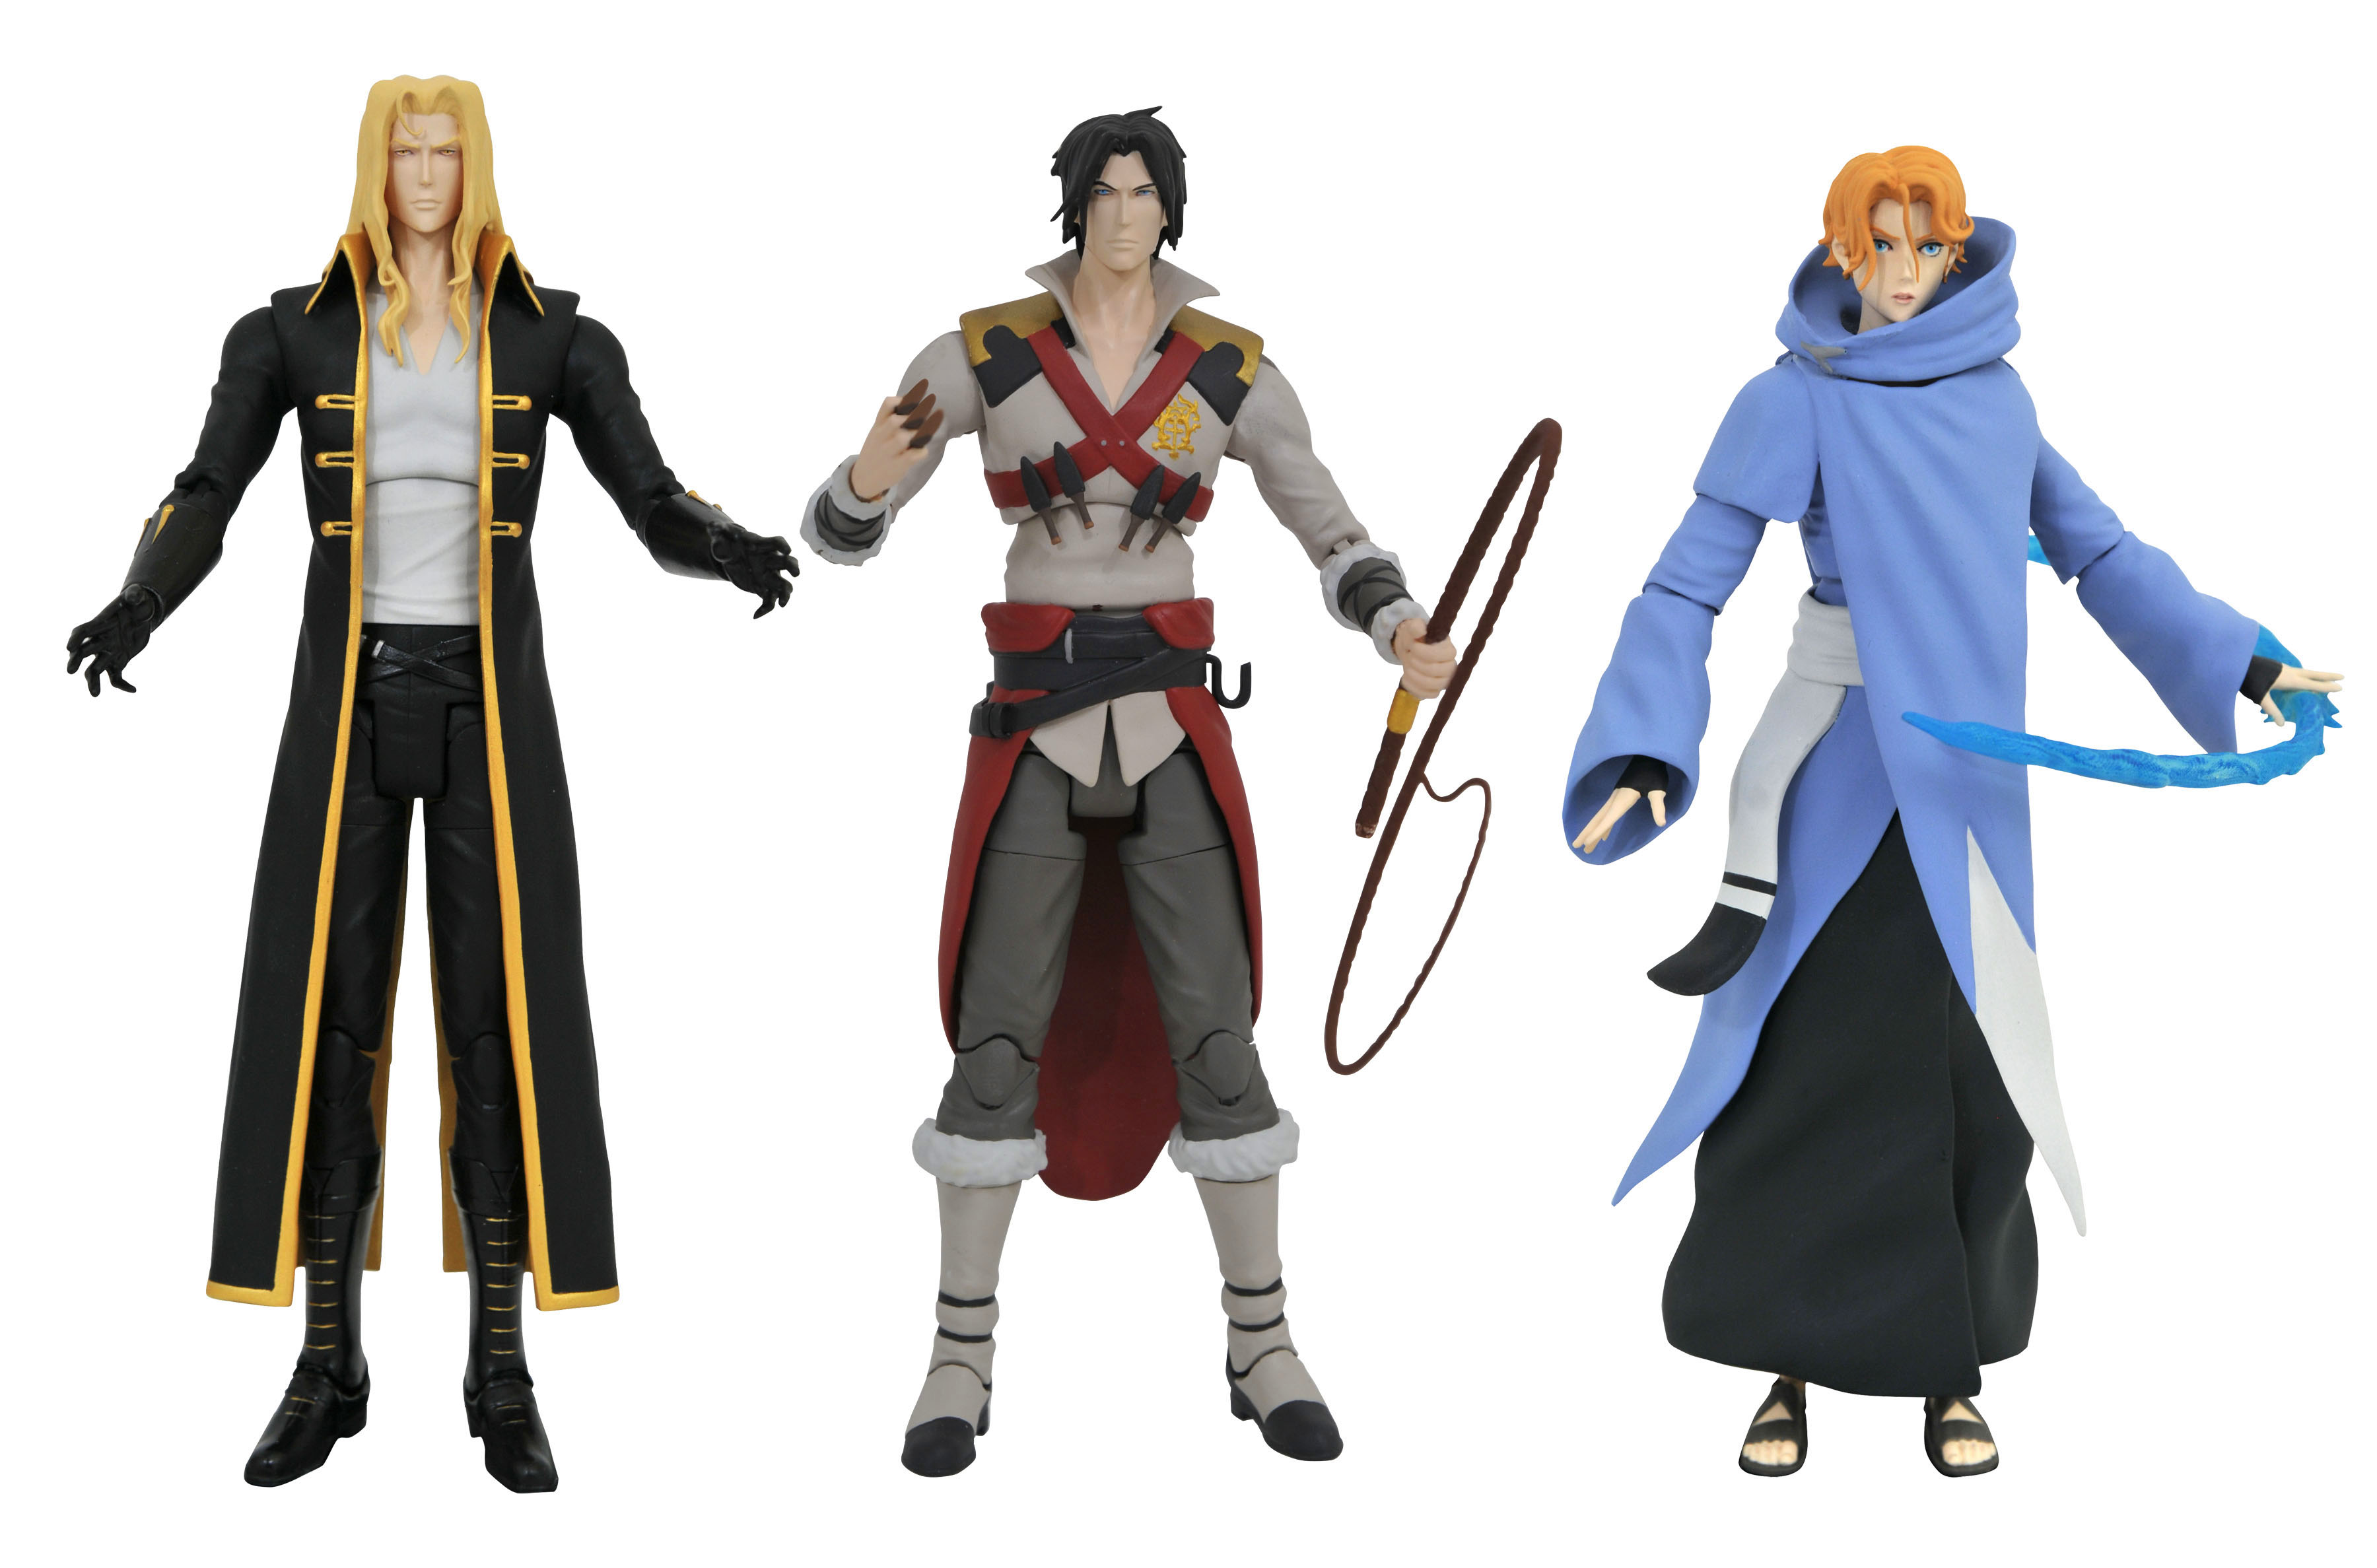 CASTLEVANIA SELECT SERIES 1 FIGURE ASST